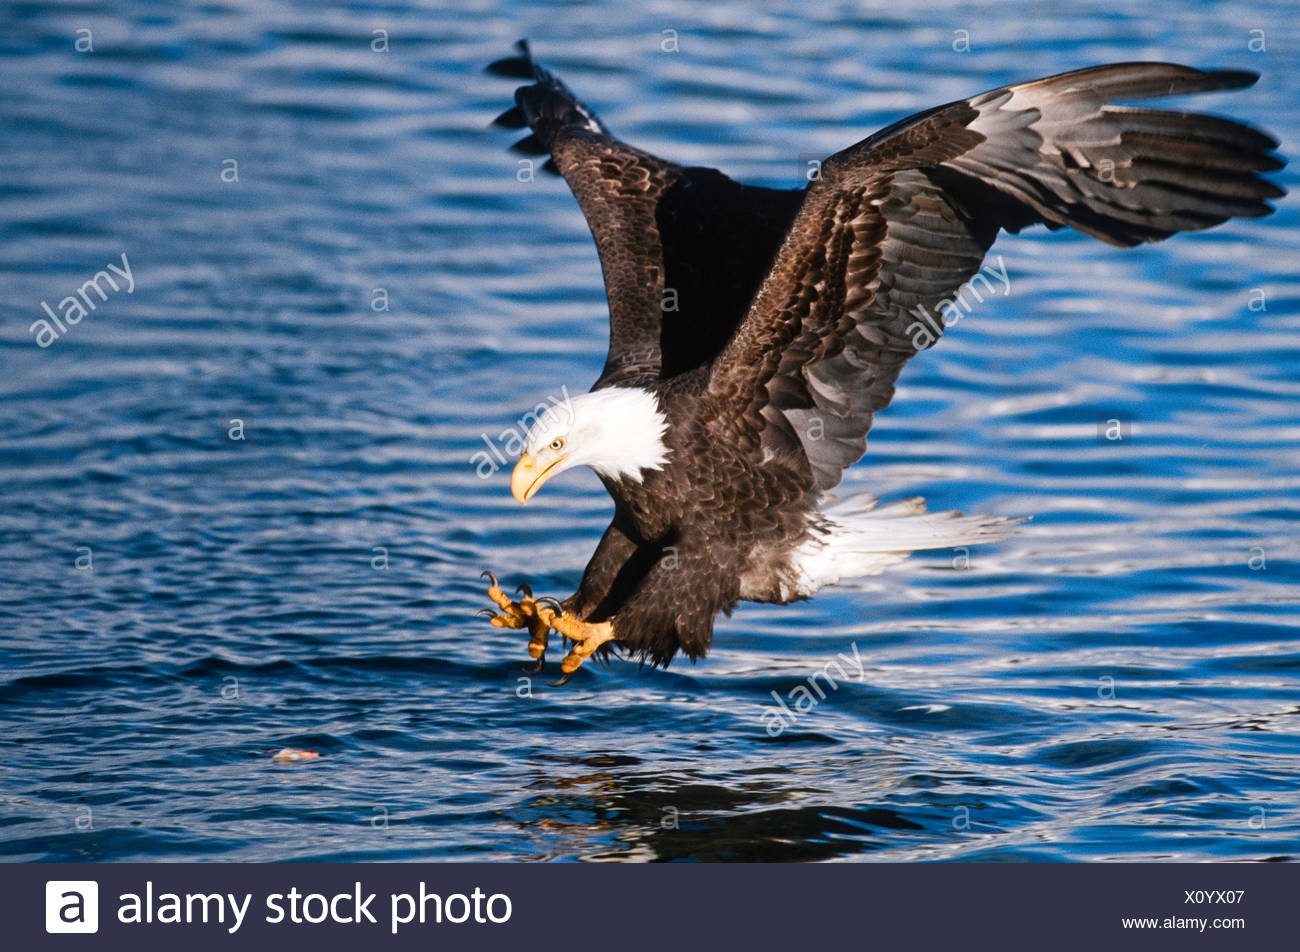 Alaska. Bald Eagle fishing with talons outstretched. - Stock Image